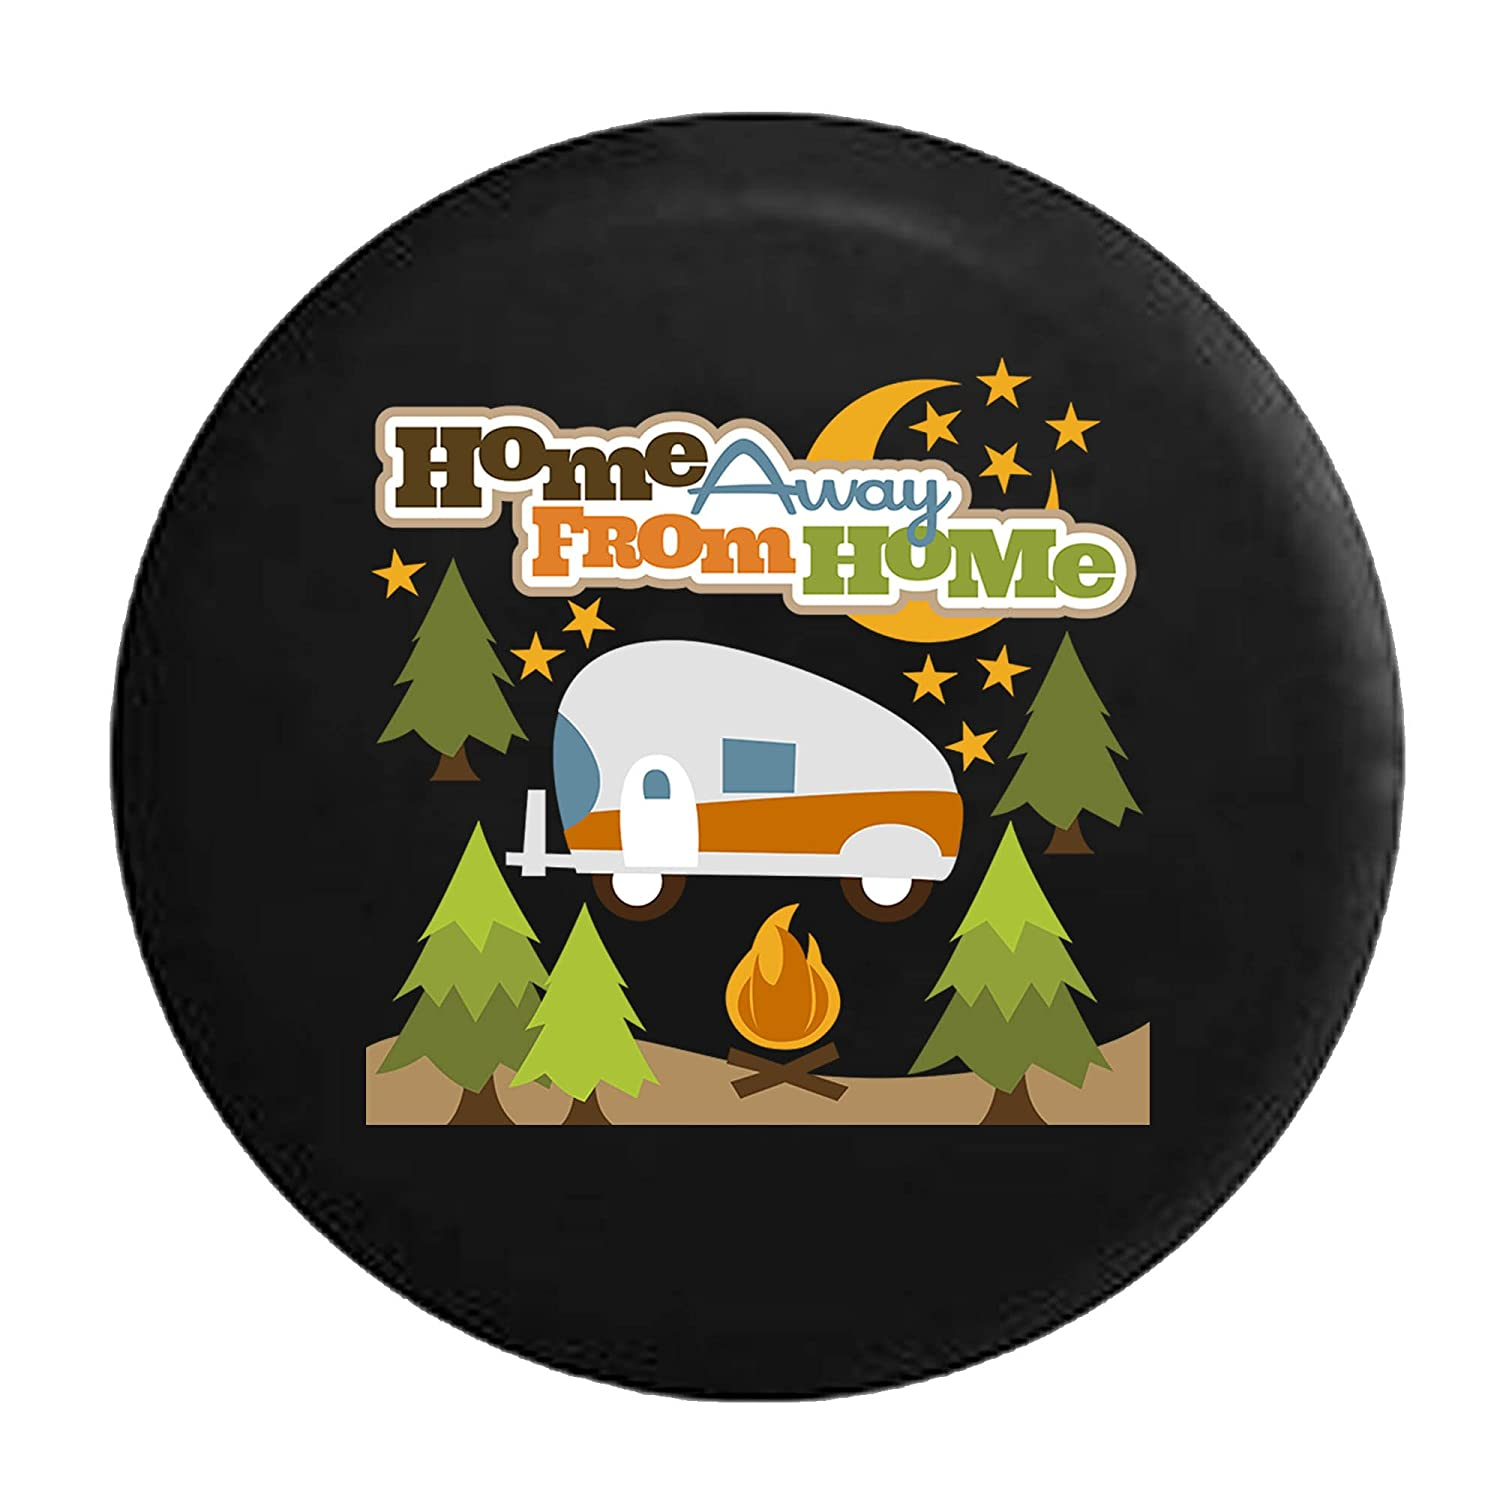 Home Away From Home RV Trailer Campfire Camping Tire Cover Black 29 in Pike Outdoors